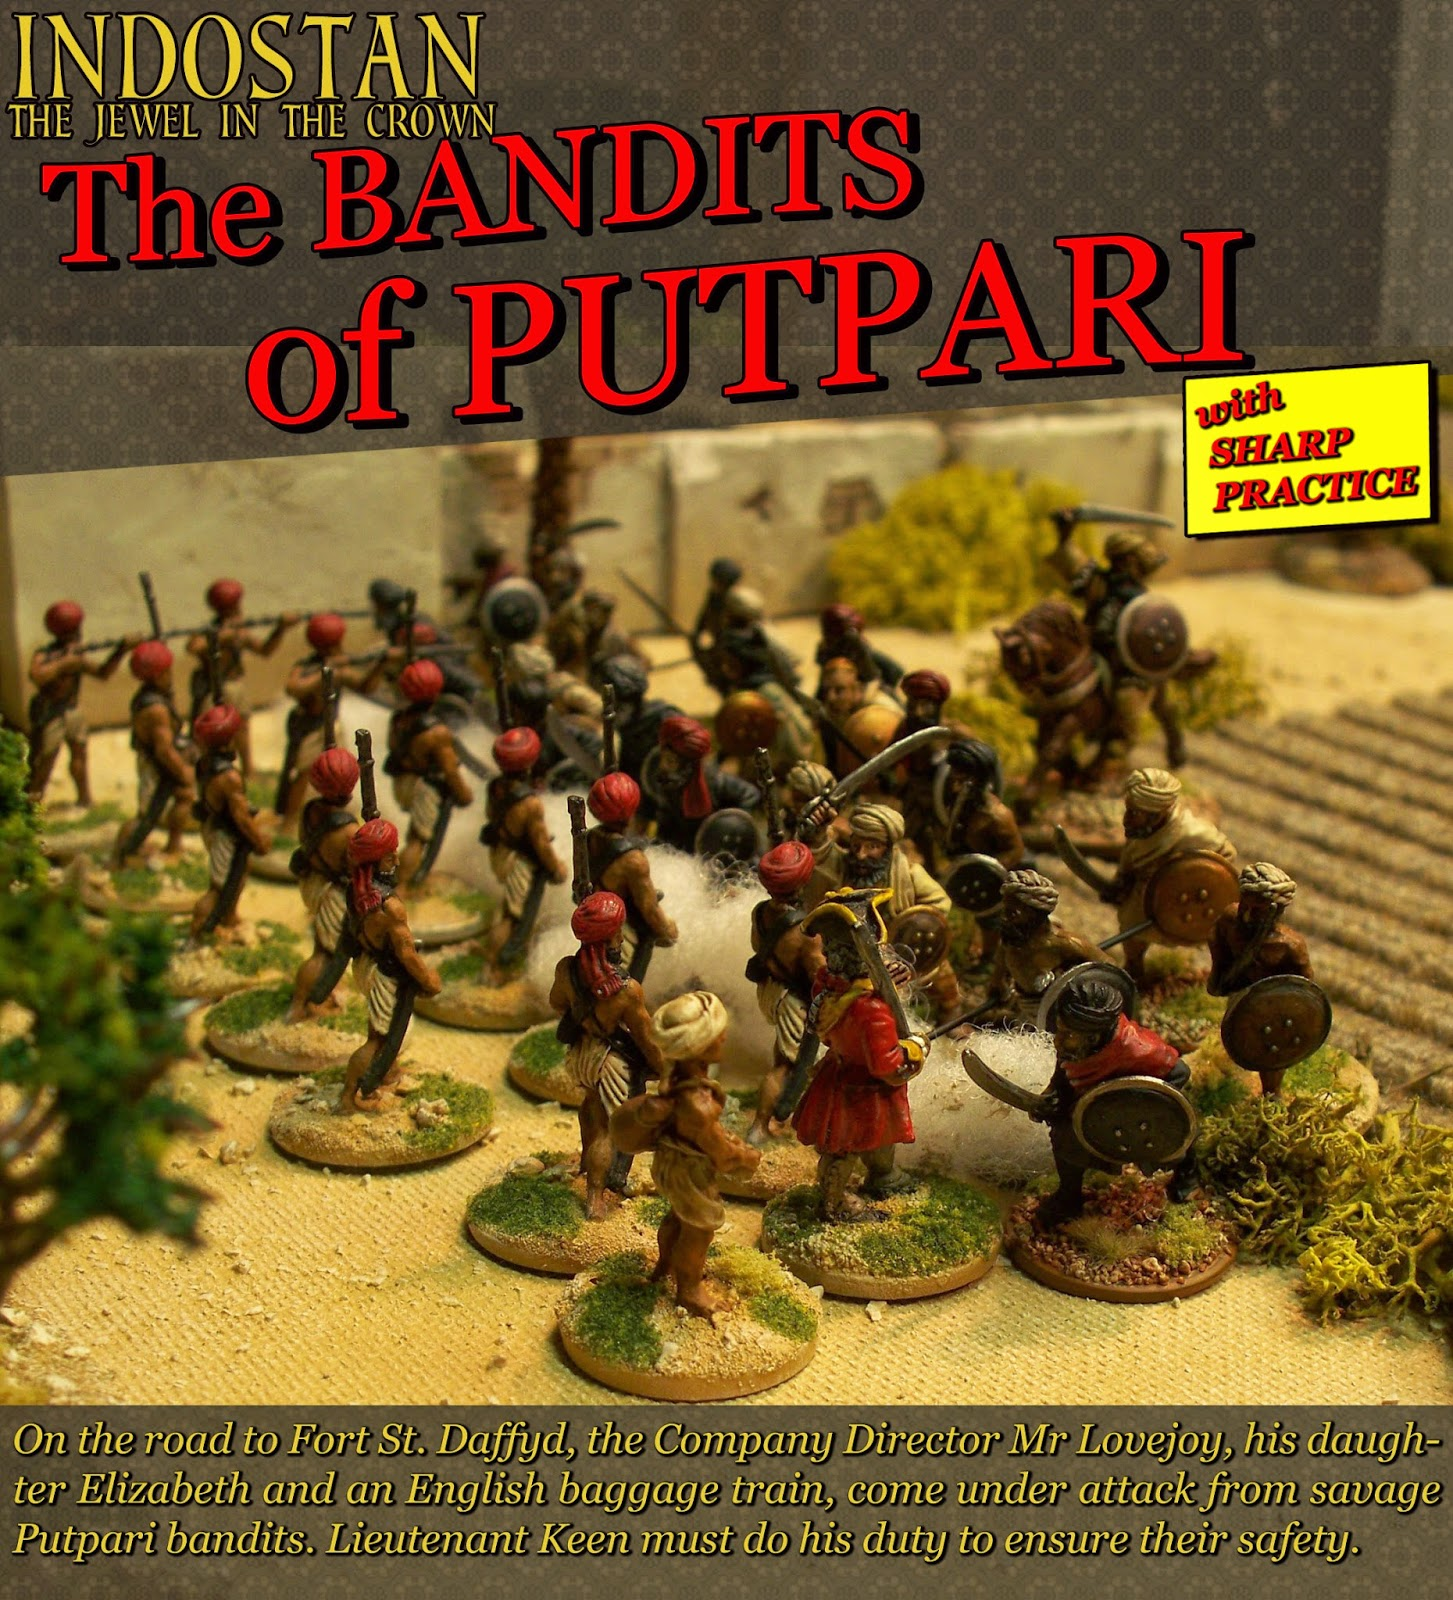 http://indostanthejewelinthecrown.blogspot.com.au/2014/08/the-bandits-of-putpari.html